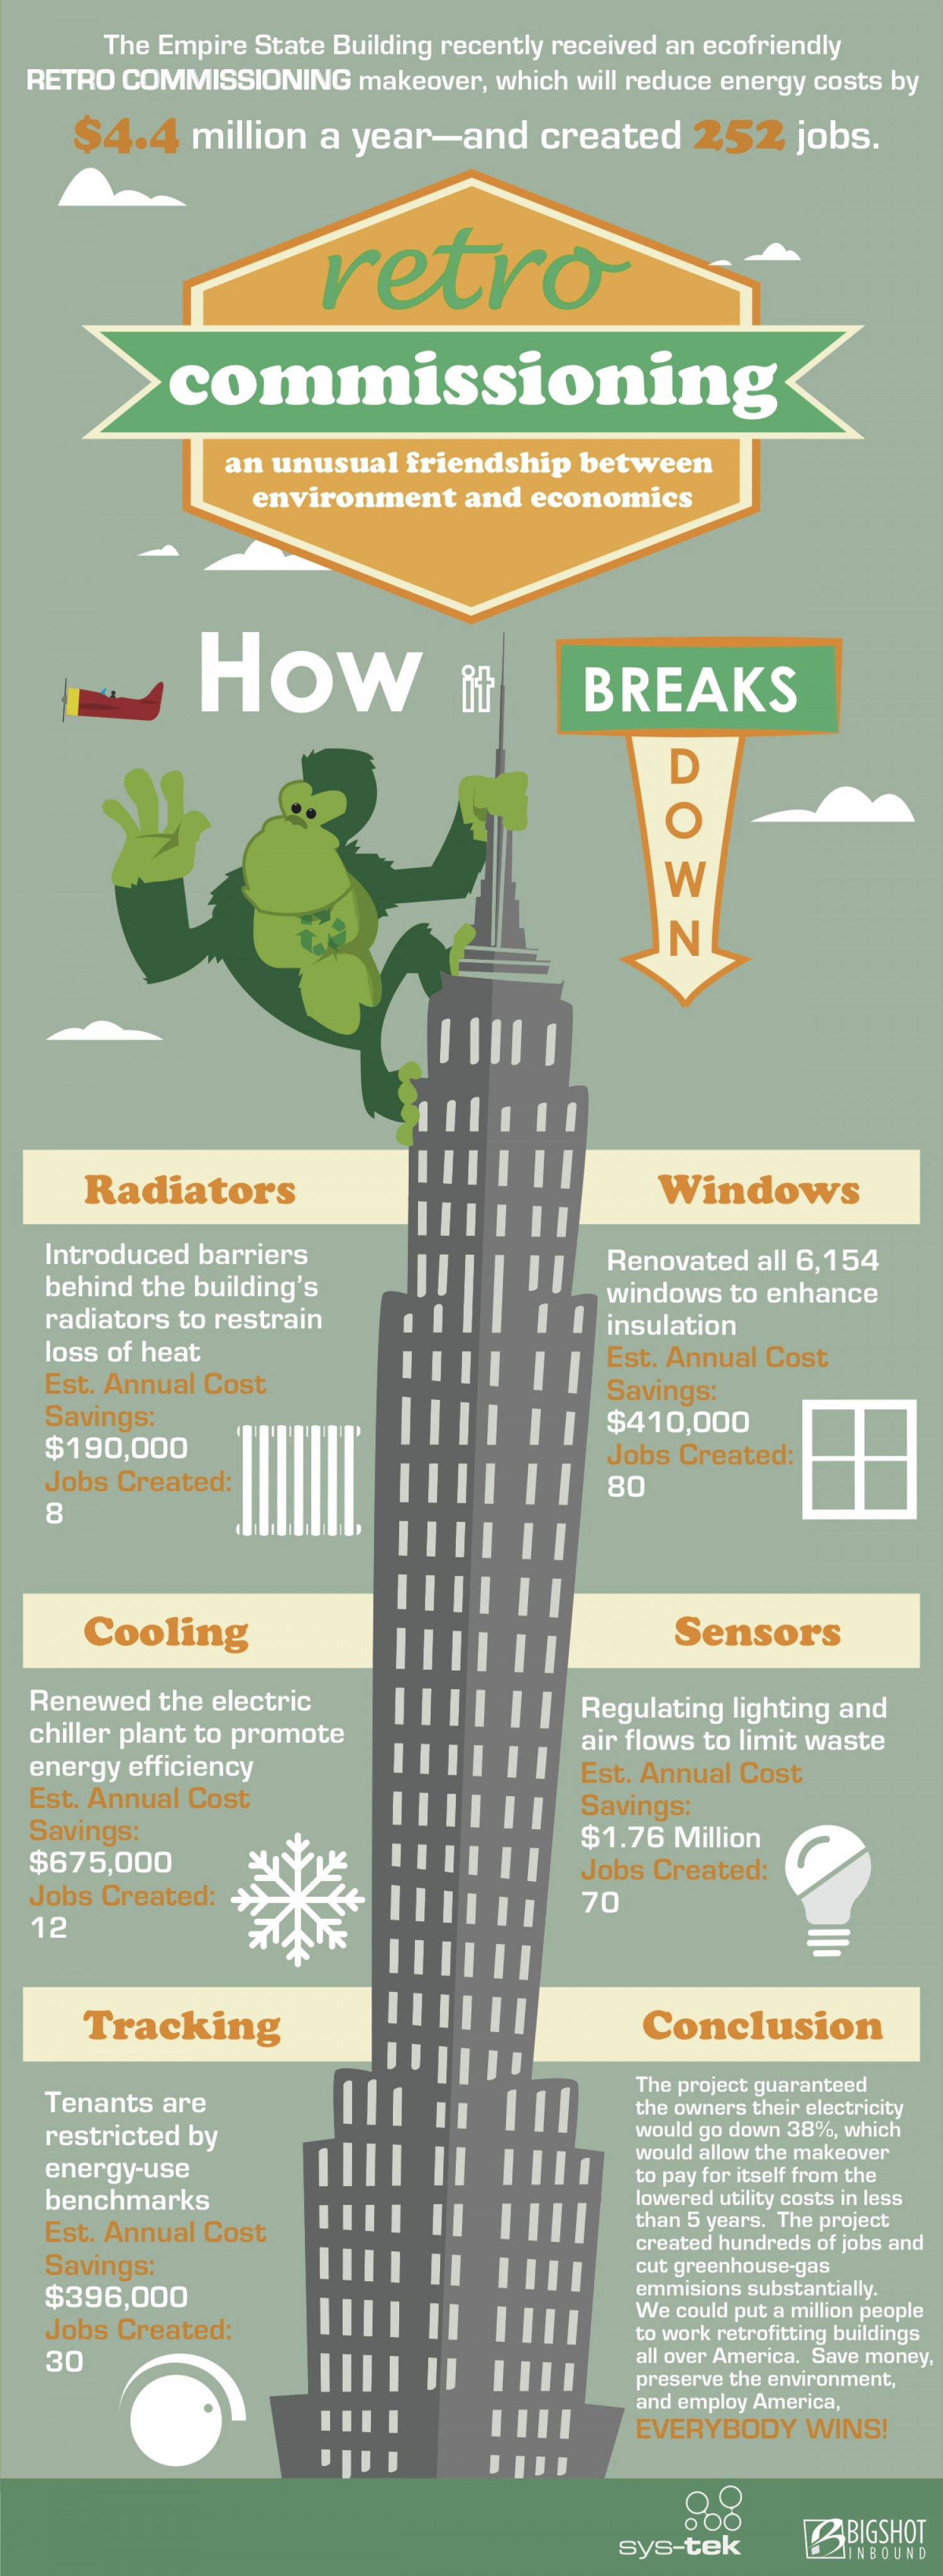 The Empire State Building: A Retro-Commissioning Makeover Infographic